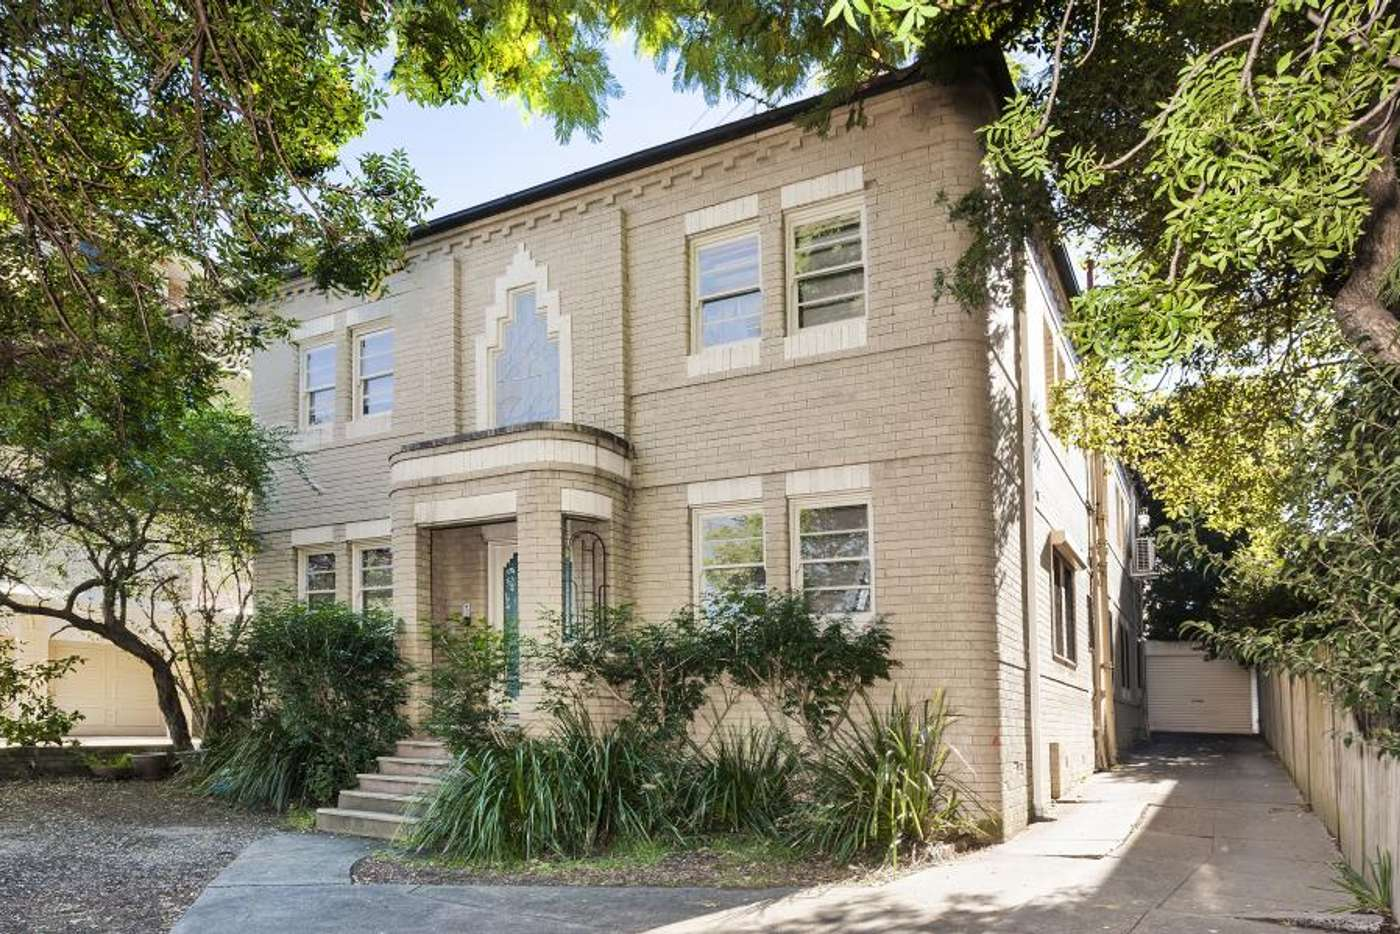 Main view of Homely apartment listing, 1/48 Grosvenor Crescent, Summer Hill NSW 2130